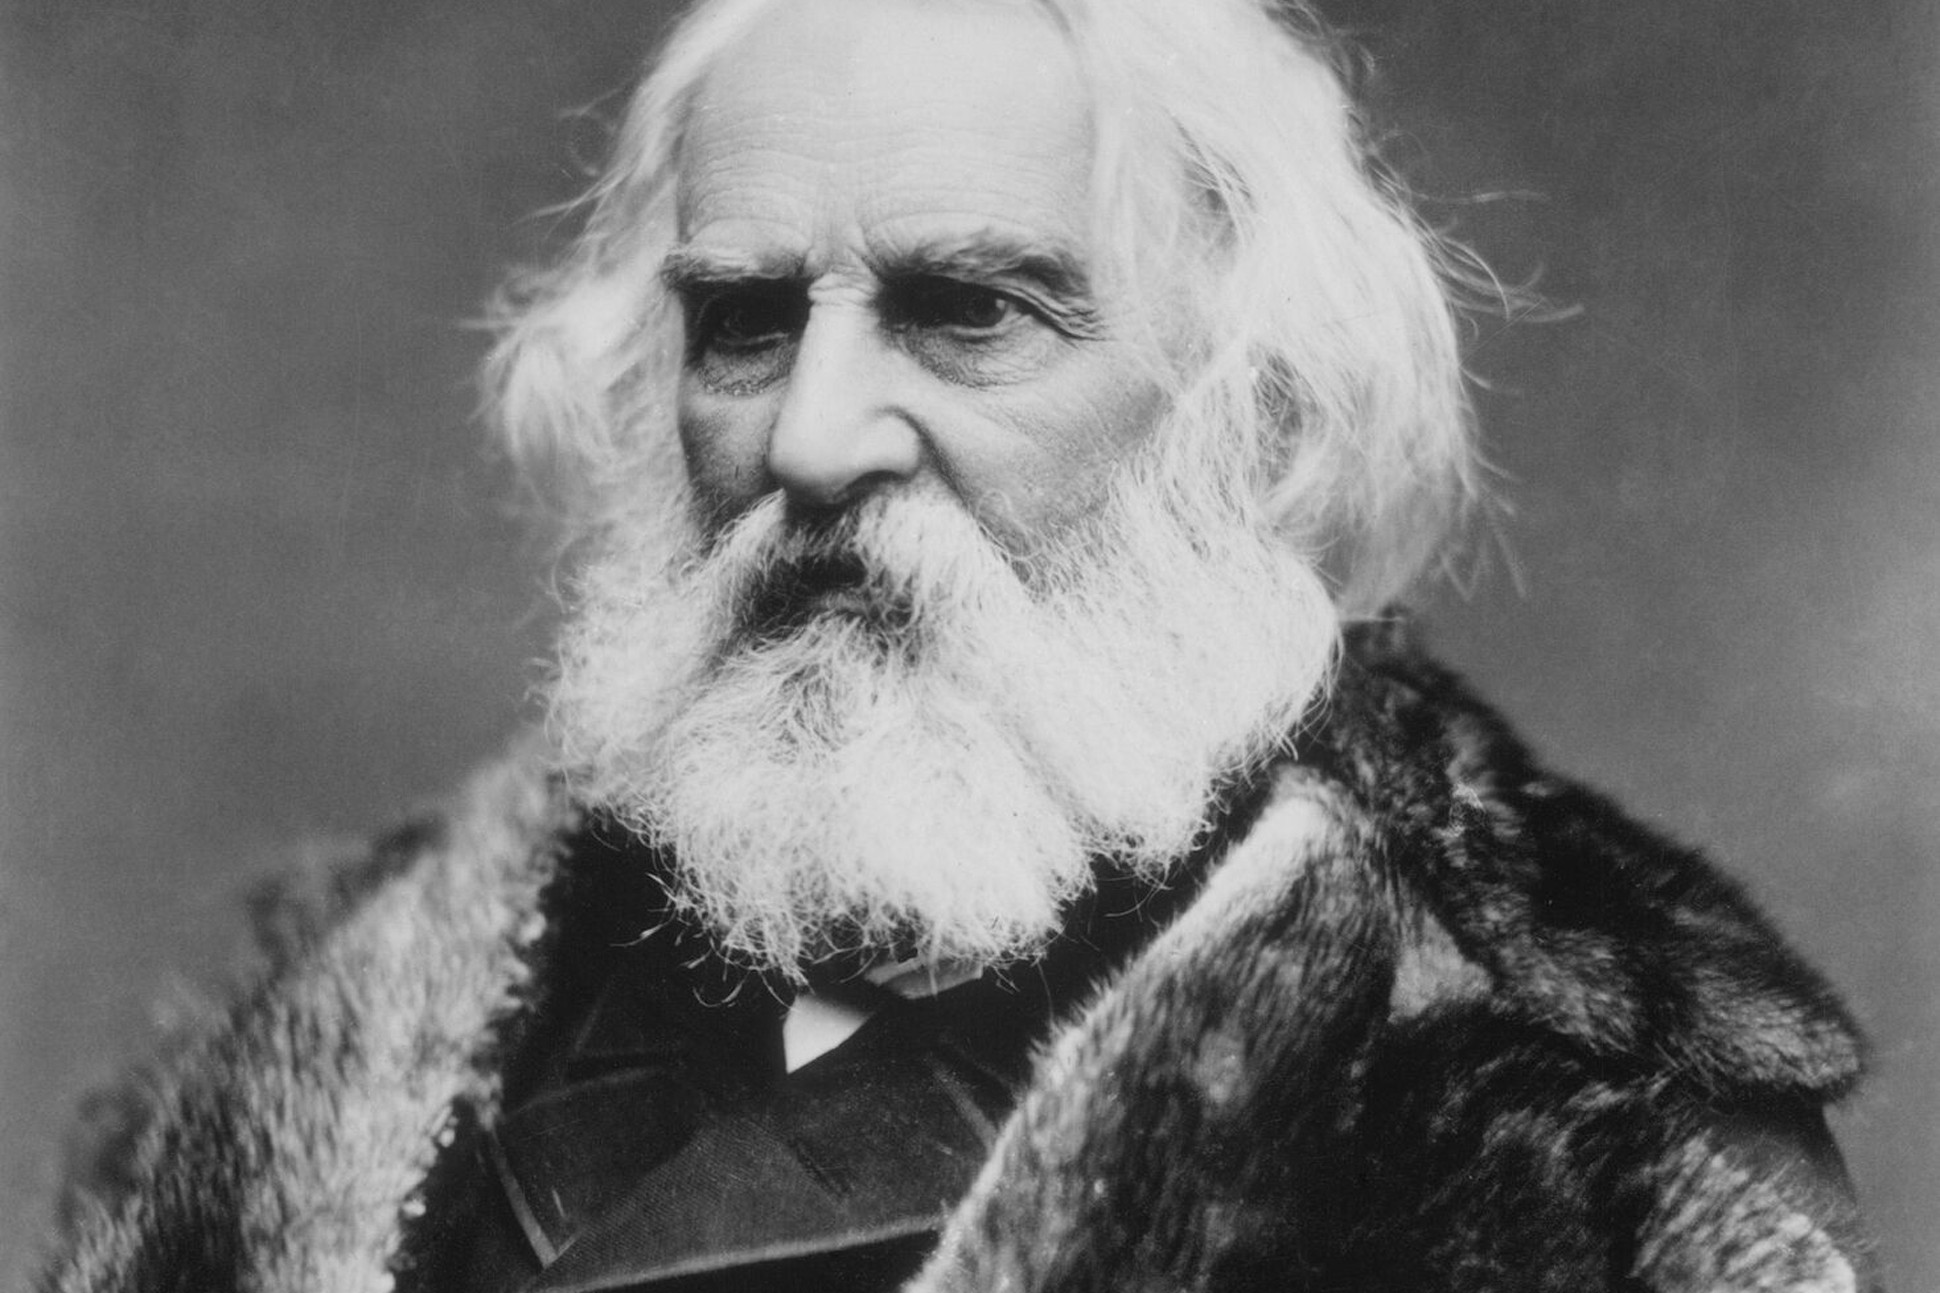 Black and white photograph of Henry Wadsworth Longfellow.